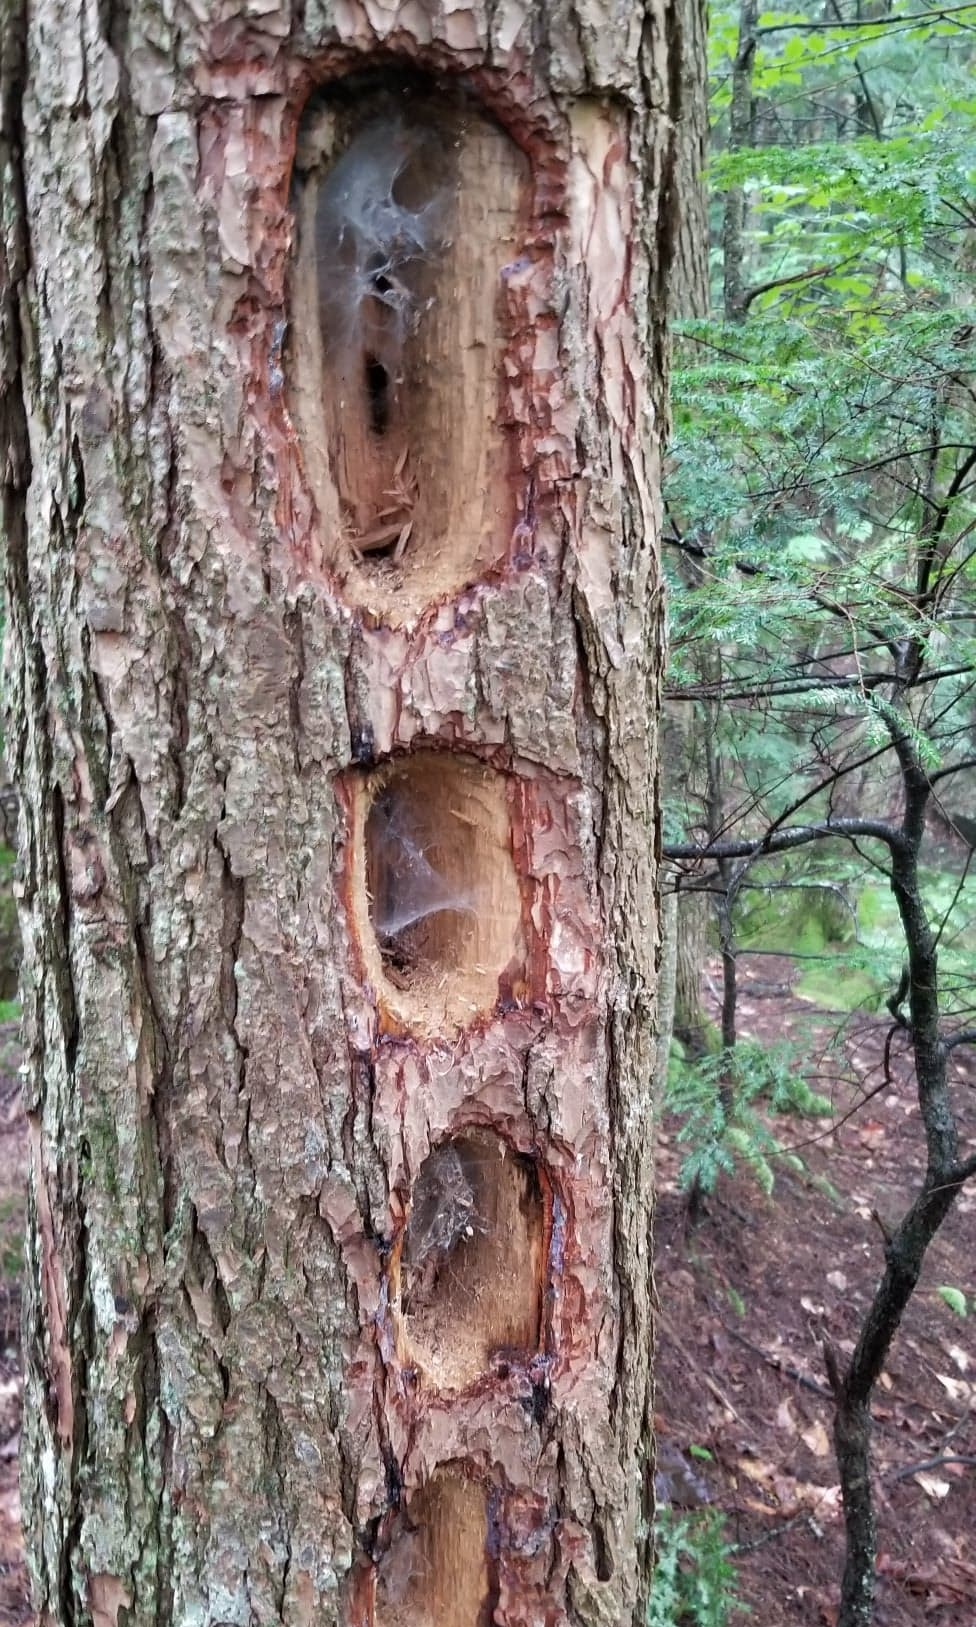 Cool evidence of a Pileated Woodpecker's work.